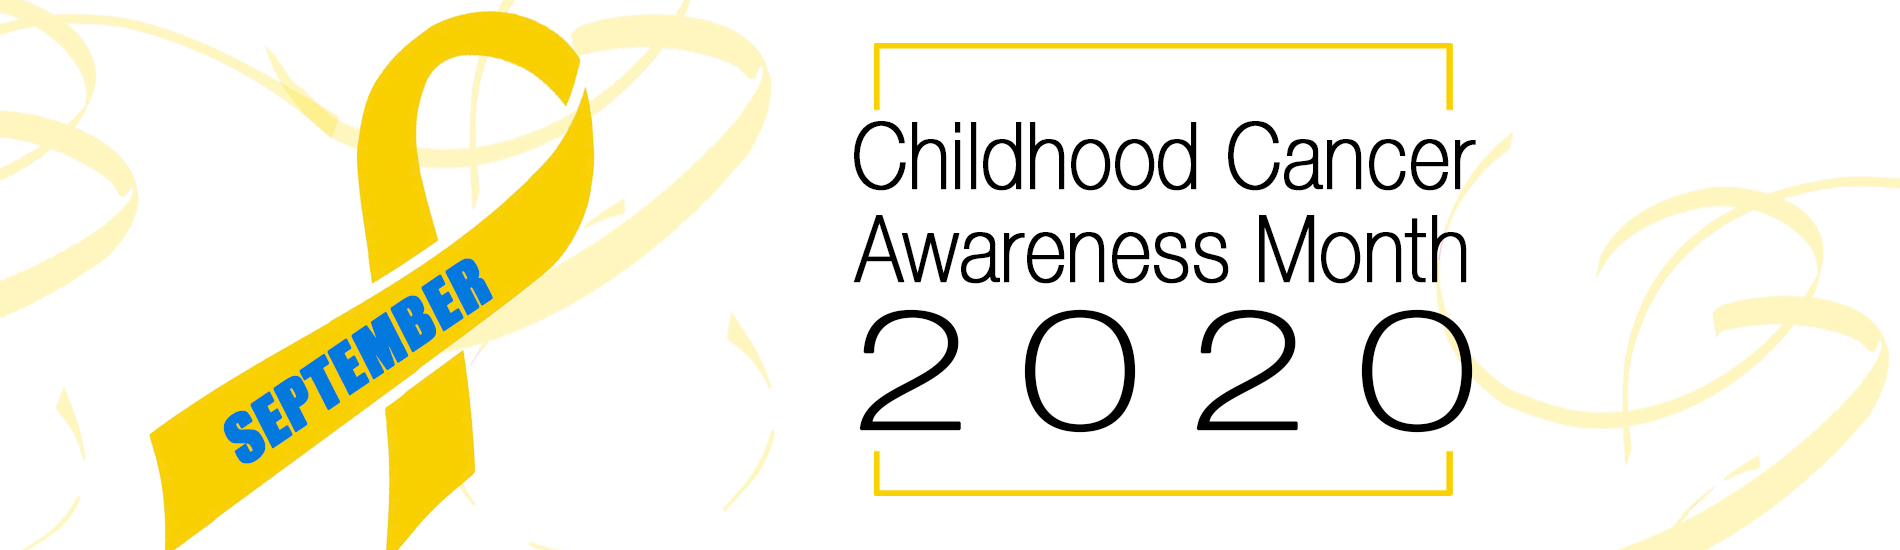 Home Banner Childhood Cancer Awareness Month 2020